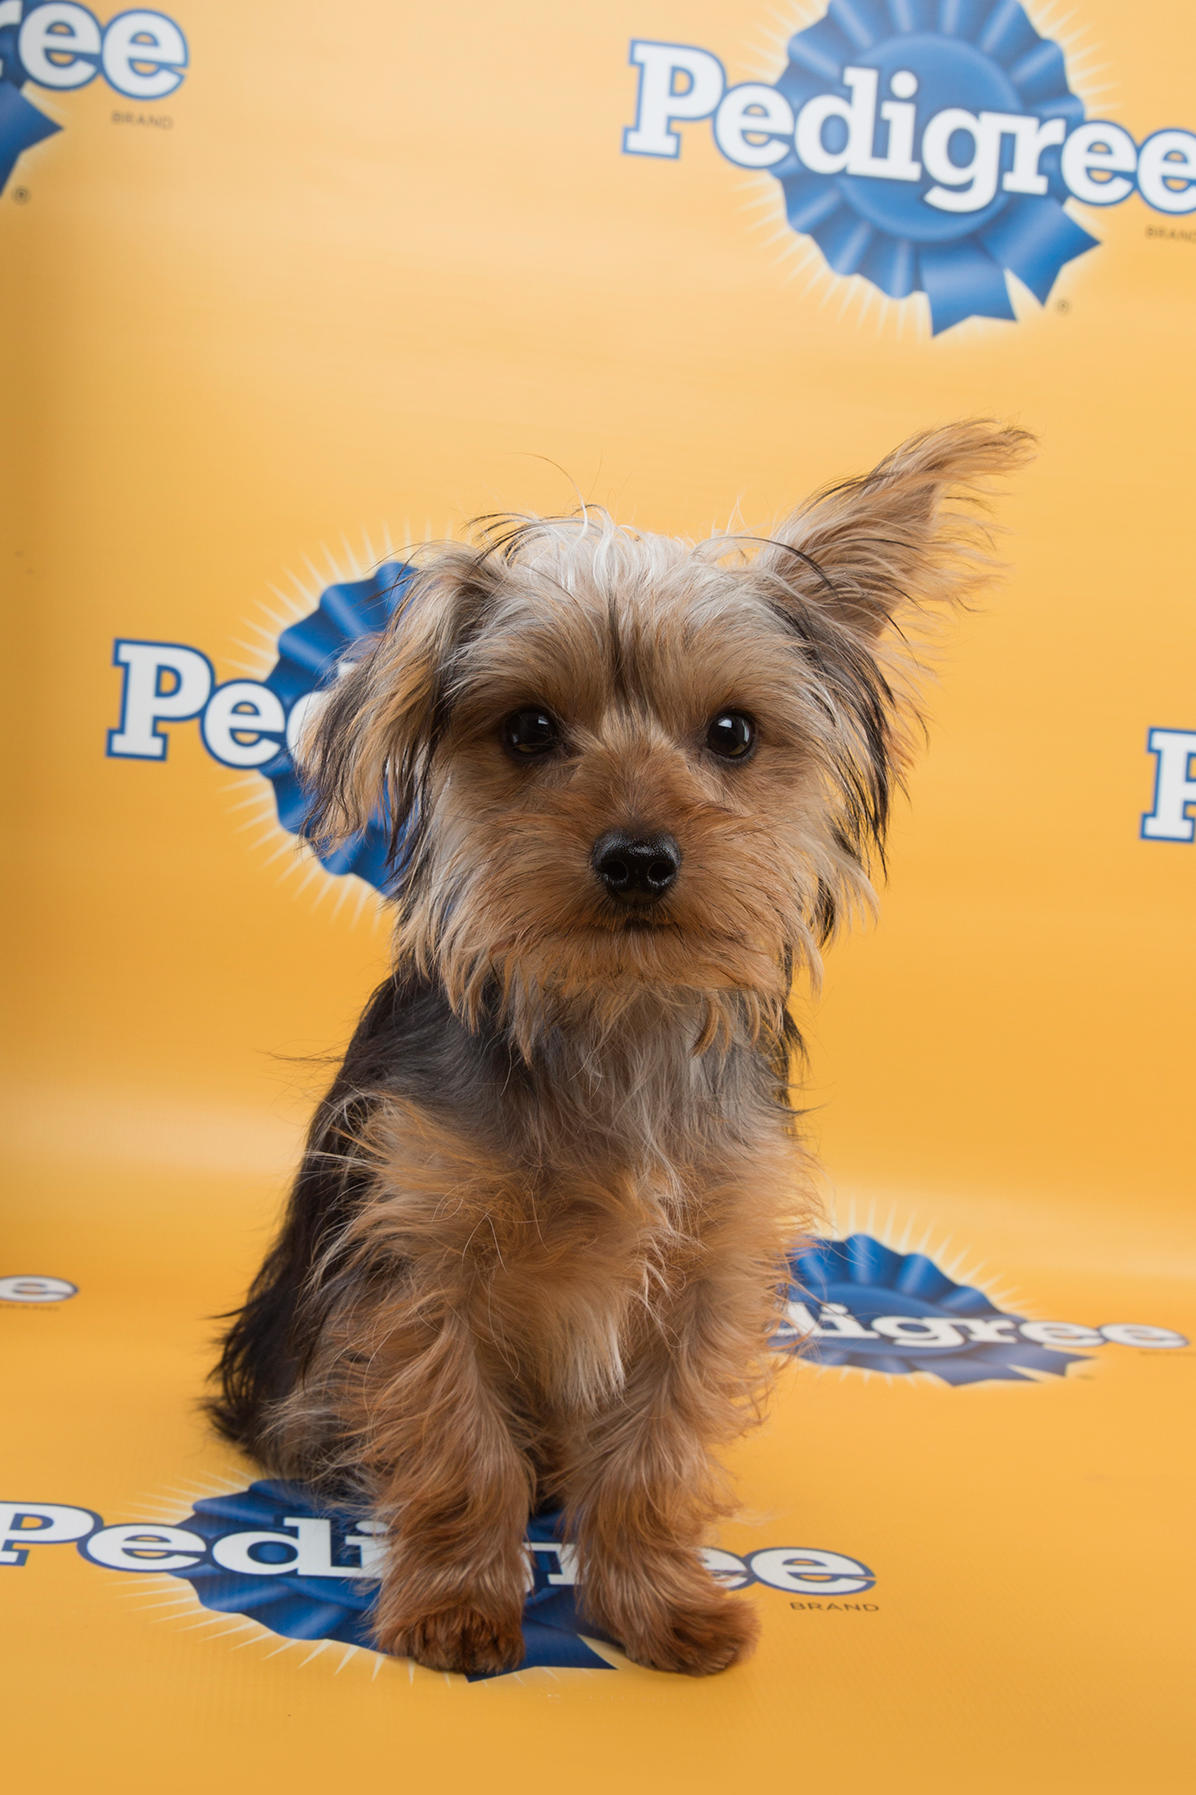 Enzo Puppy Bowl 11, puppy bowl xi, puppy bowl, starting lineup, lineup, puppy, puppies